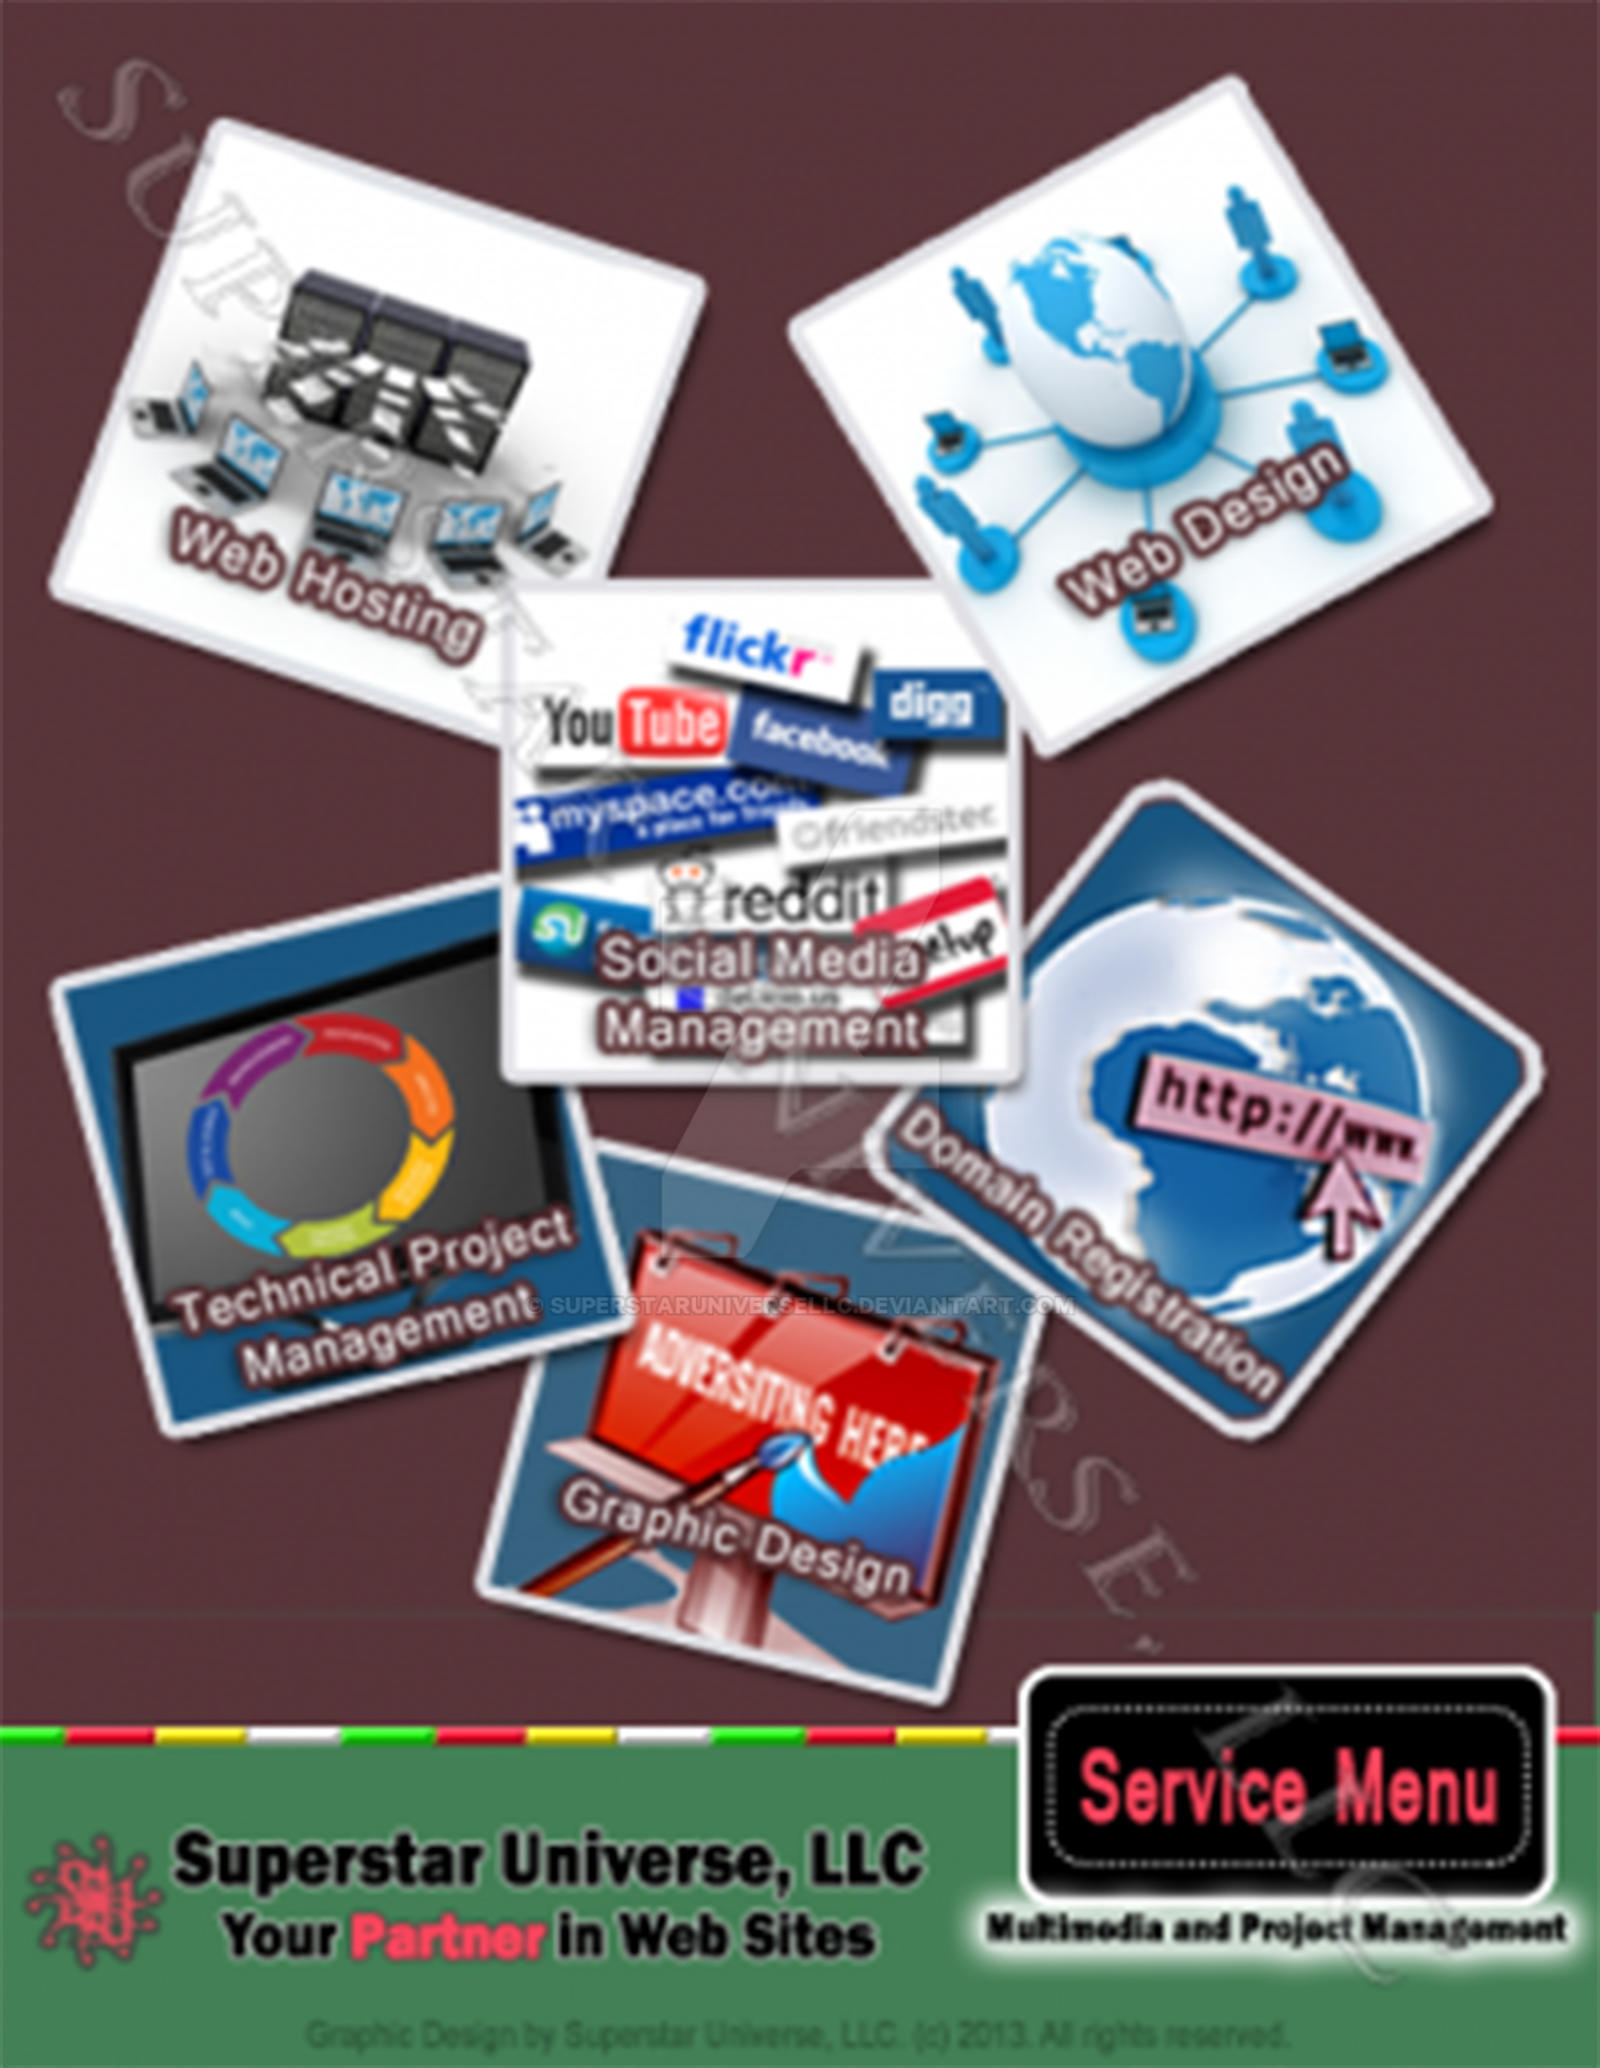 Project Management Service Menu by SuperstarUniverseLLC